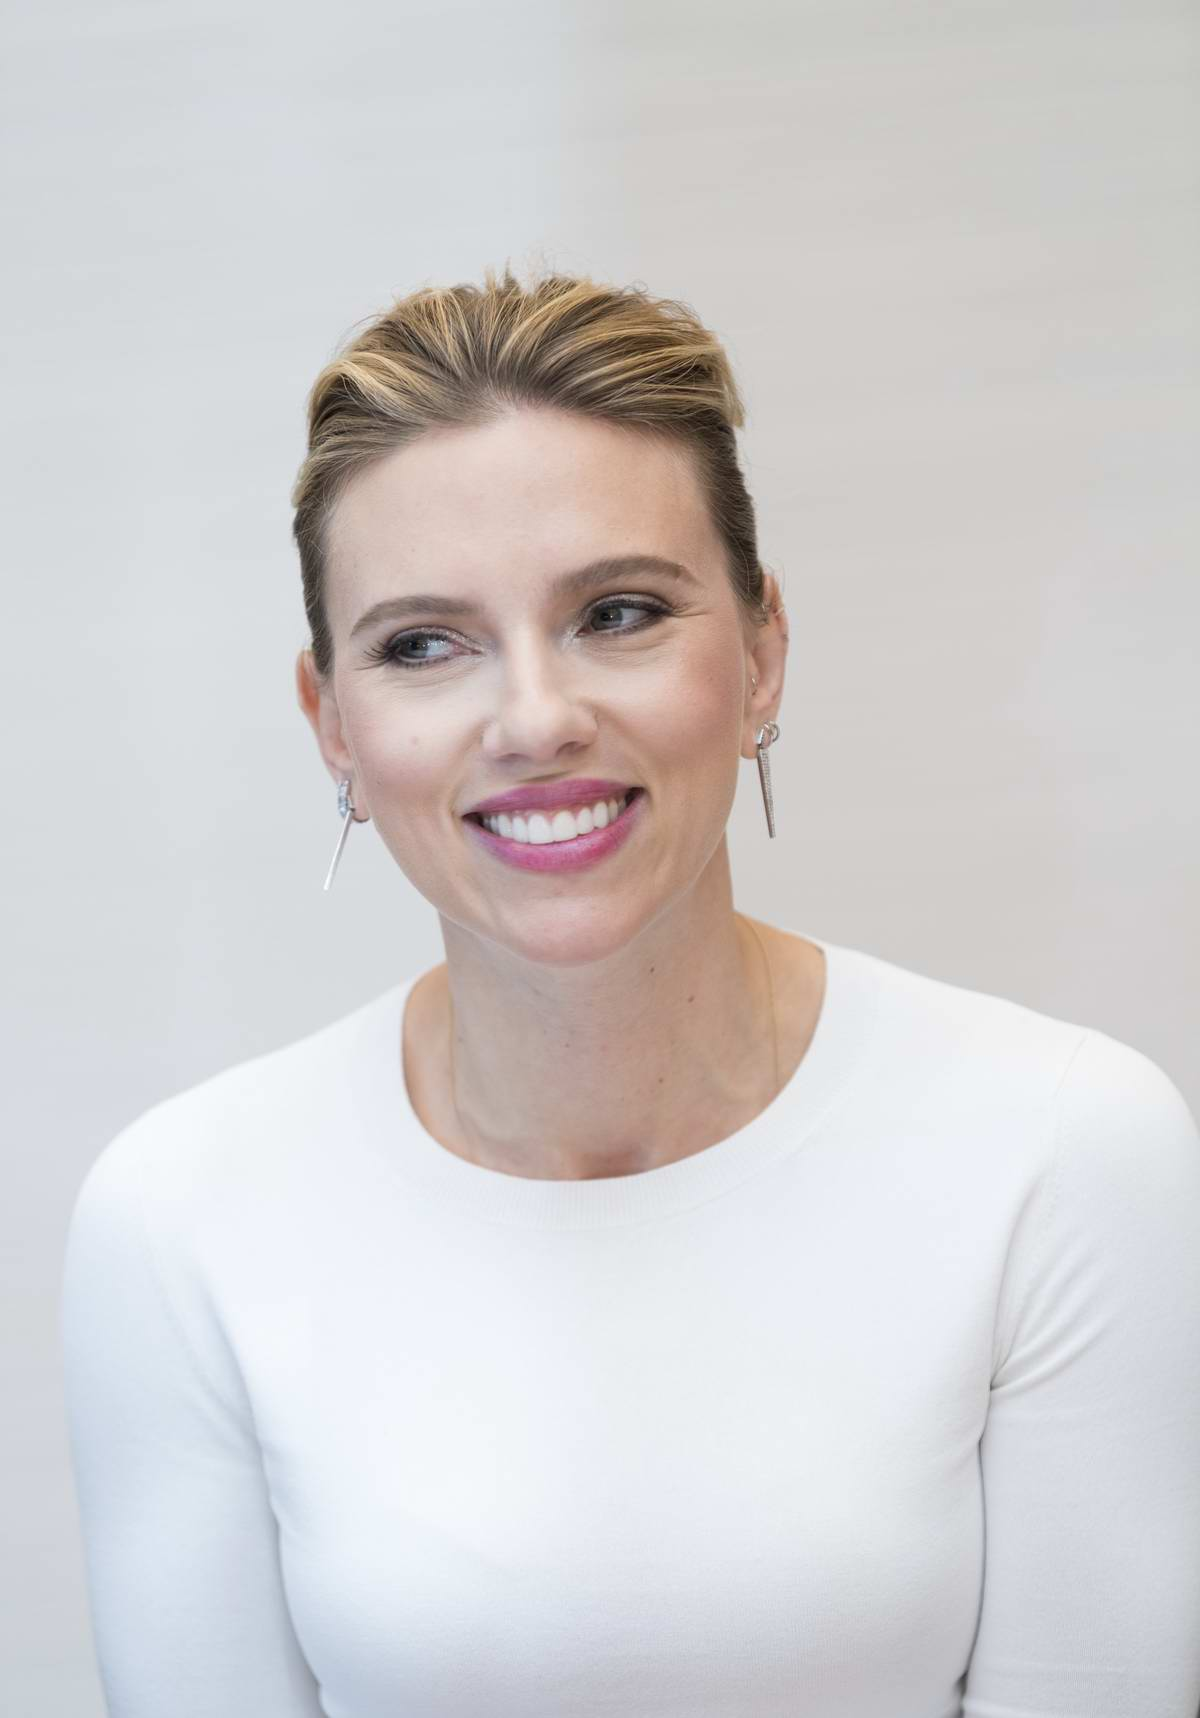 Scarlett Johansson attends 'Avengers: Endgame' Press Conference in Los Angeles